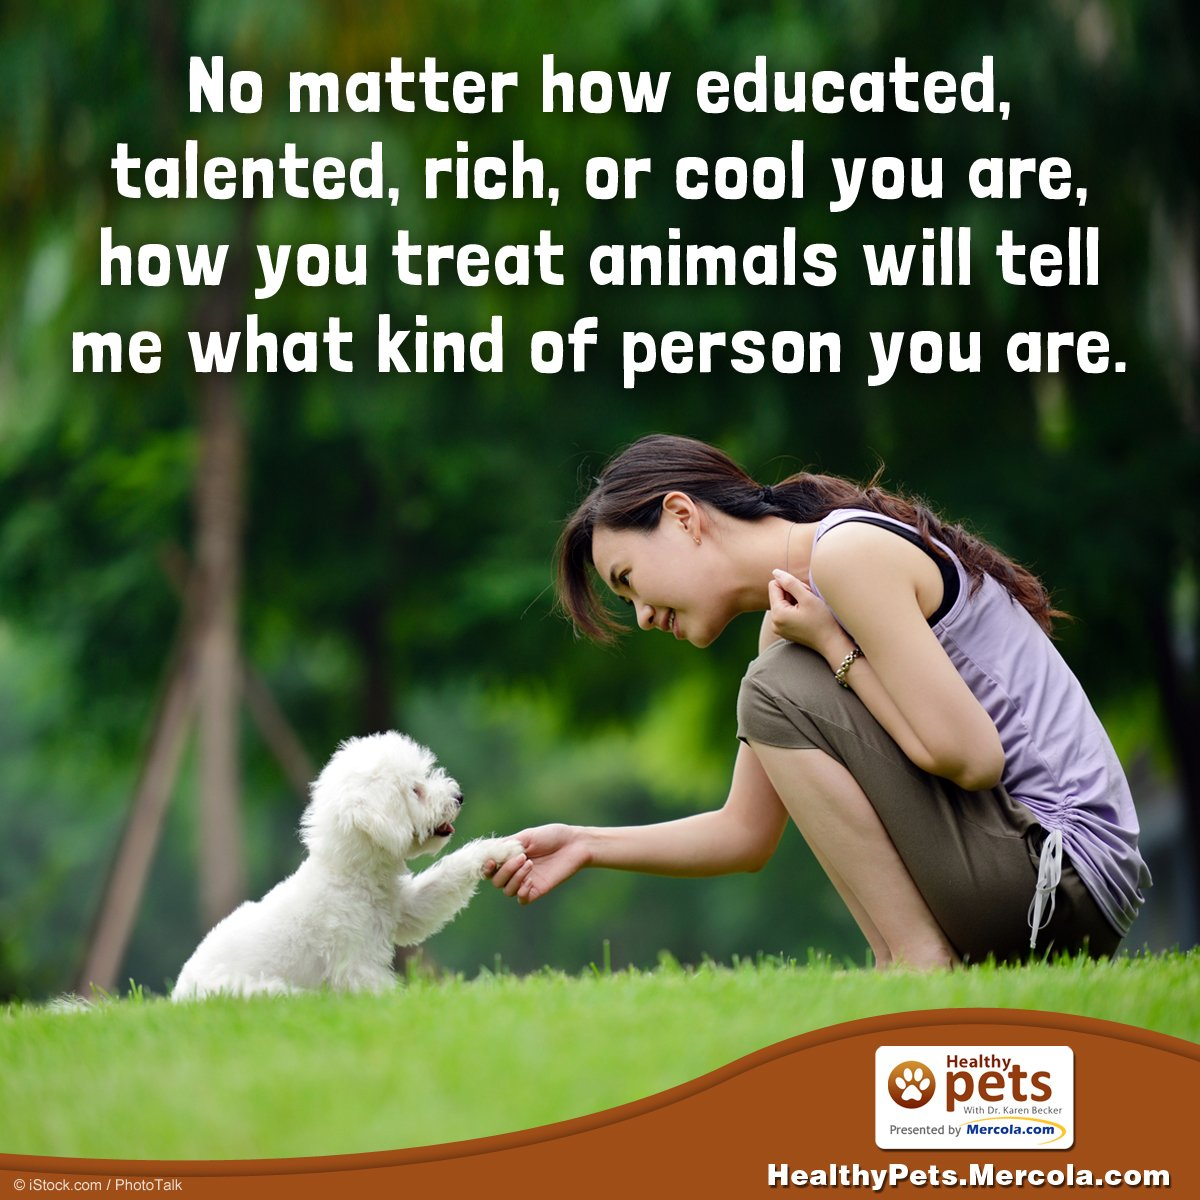 ...how you treat animals will tell me what kind of person you are. https://t.co/PjJiiBSFeZ